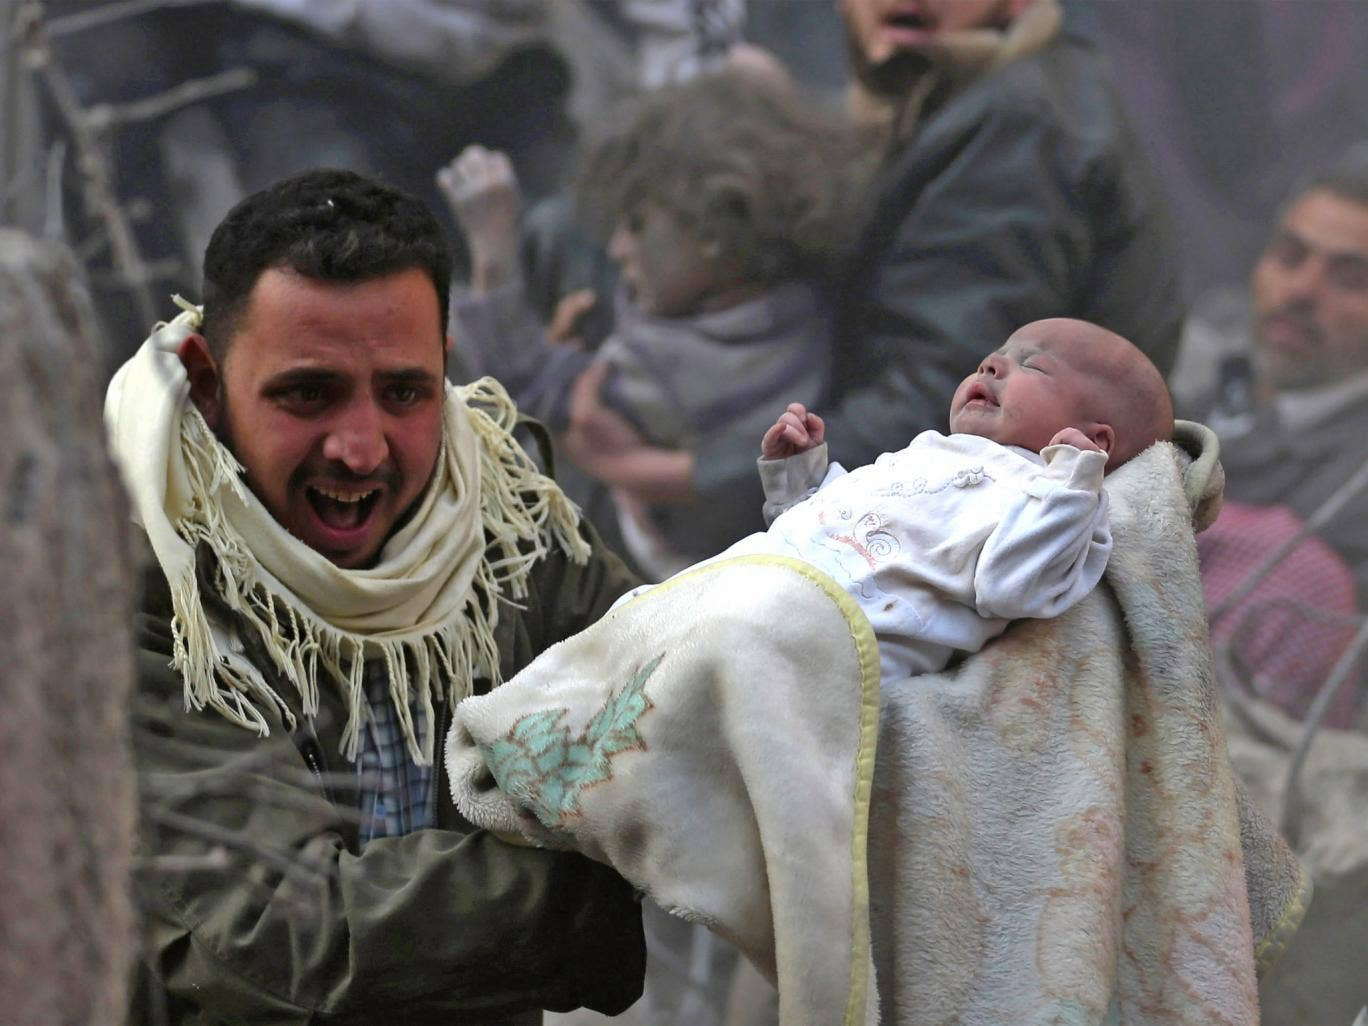 A man holds up a dust-covered baby who survived what activists say was an airstrike by forces loyal to the Syrian President, Bashar al-Assad, in the Duma neighbourhood of Damascus